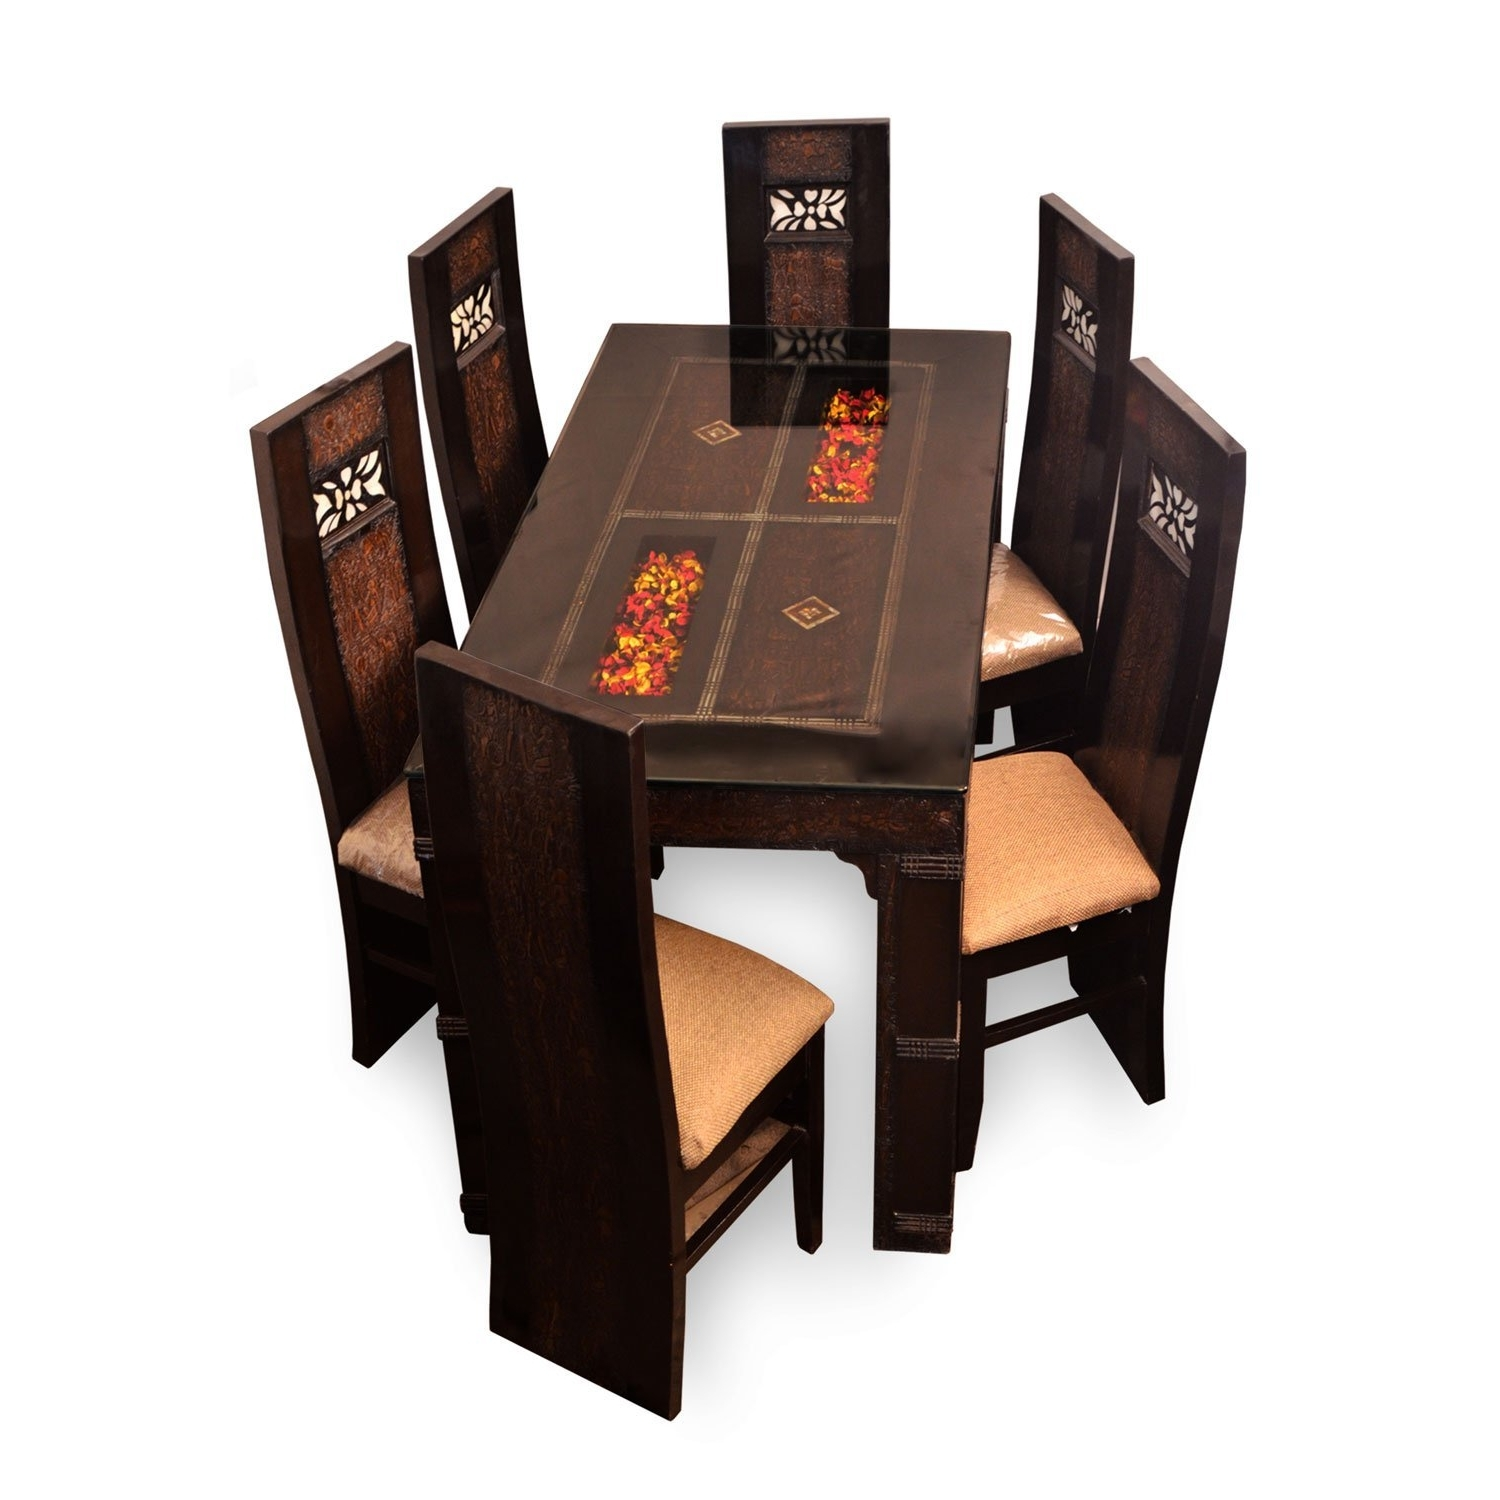 Affordable Classic 6 Seater Dining Table Set, Glass Dinner Table Within Favorite 6 Seater Glass Dining Table Sets (View 11 of 25)